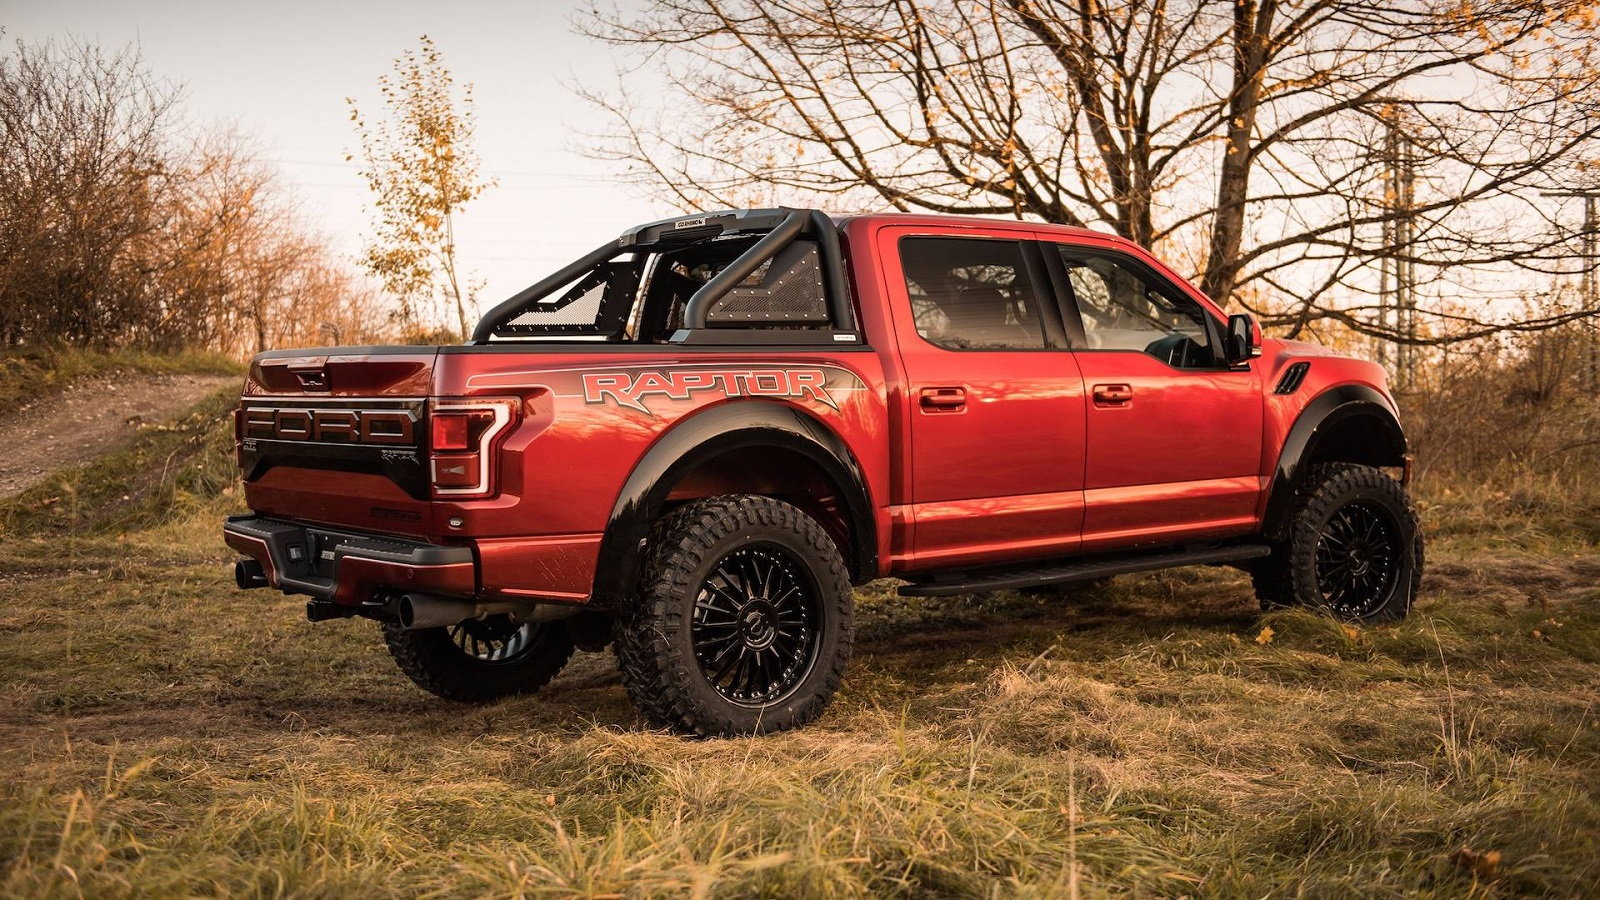 Geiger Cars Builds a German Tuned Ford Raptor